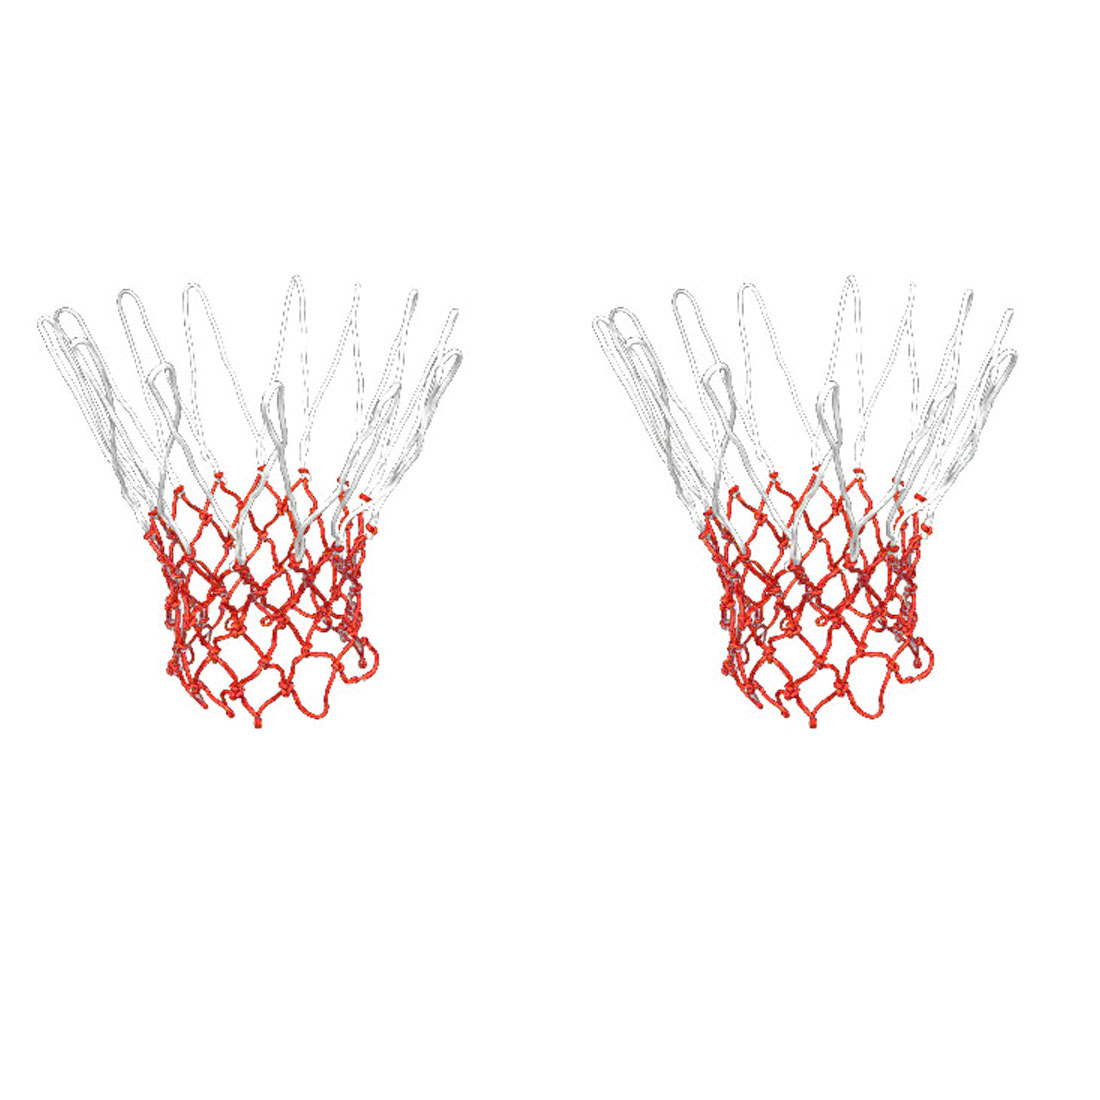 "Unique Bargains 2 Pcs 15.7"" Long Braided Nylon Sport Basketball Nets for Training Match"